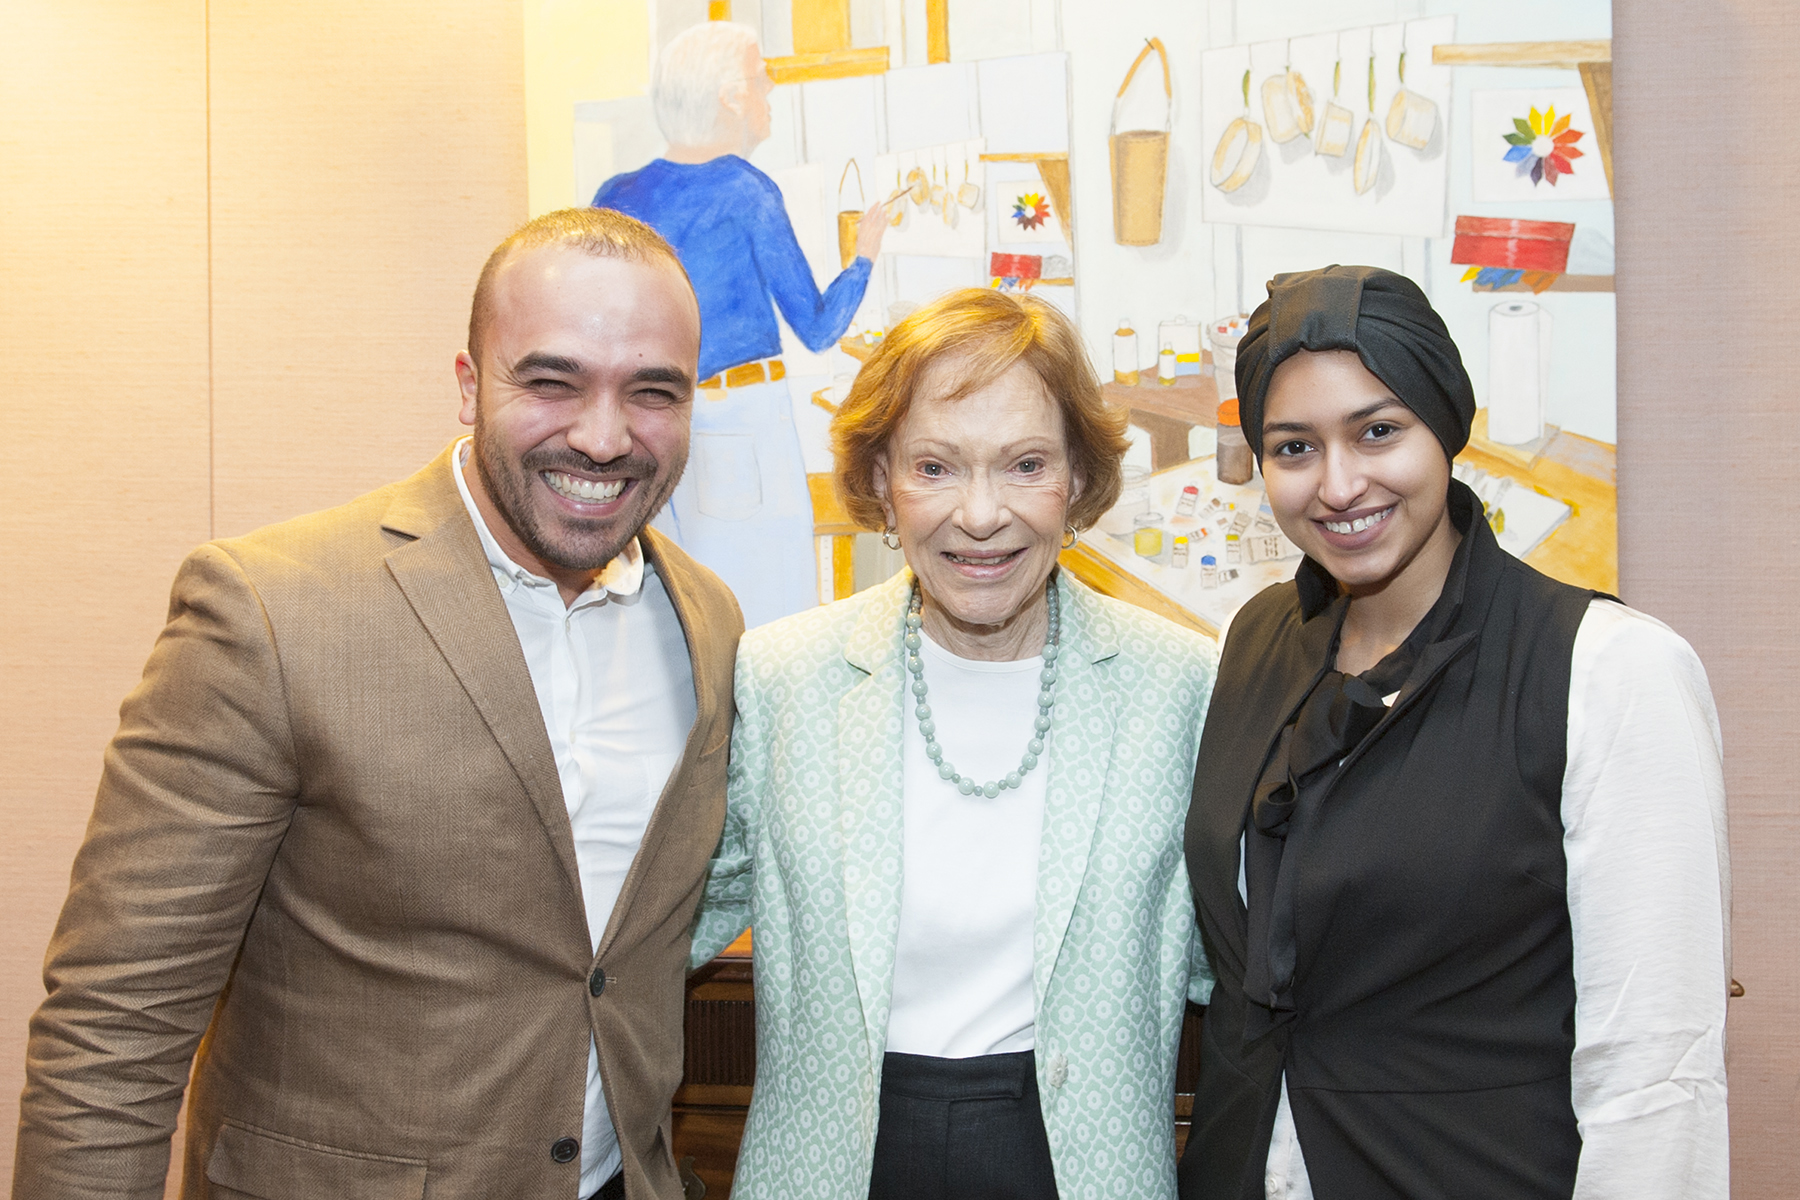 Al Jalila Foundation announces applications are open for the UAE Rosalynn Carter Fellowships for Mental Health Journalism Program